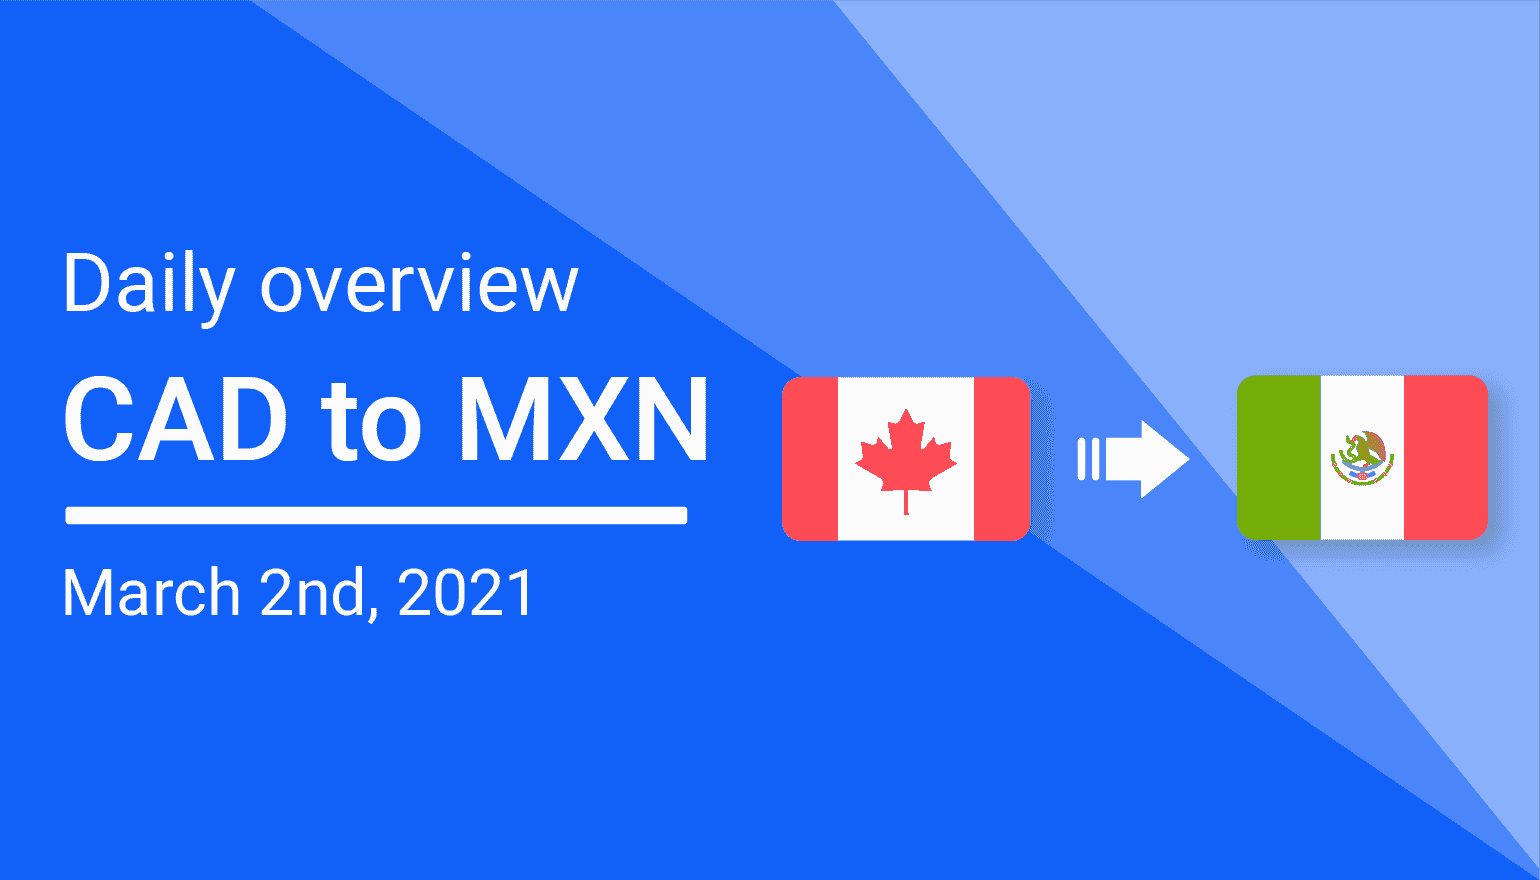 CAD to MXN Daily Overview: March 2nd